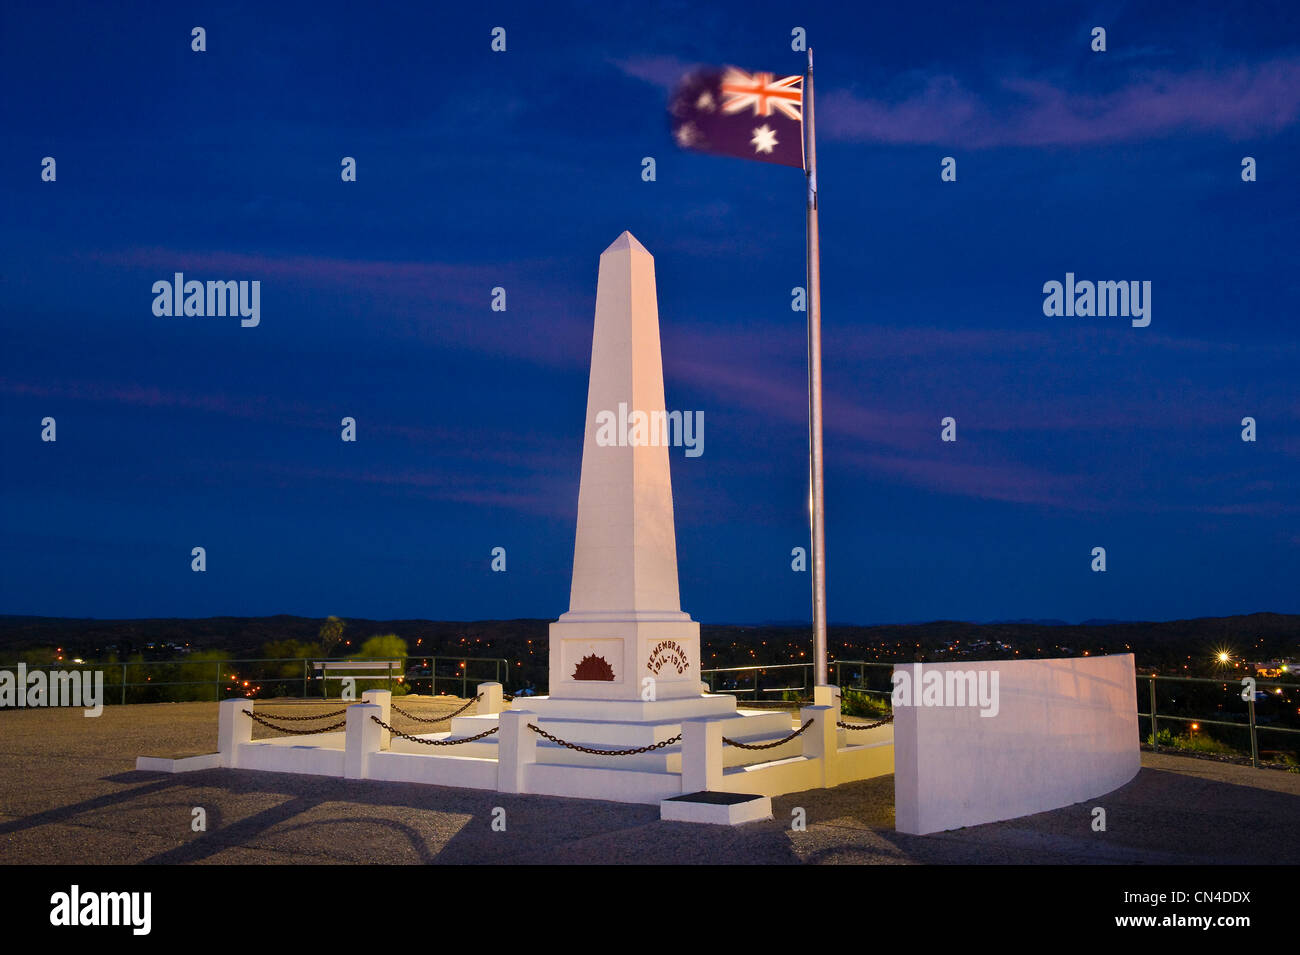 Australia, Northern Territory, Alice Springs, Anzac Hill Lookout (Australian and New Zealand Army Corps) - Stock Image